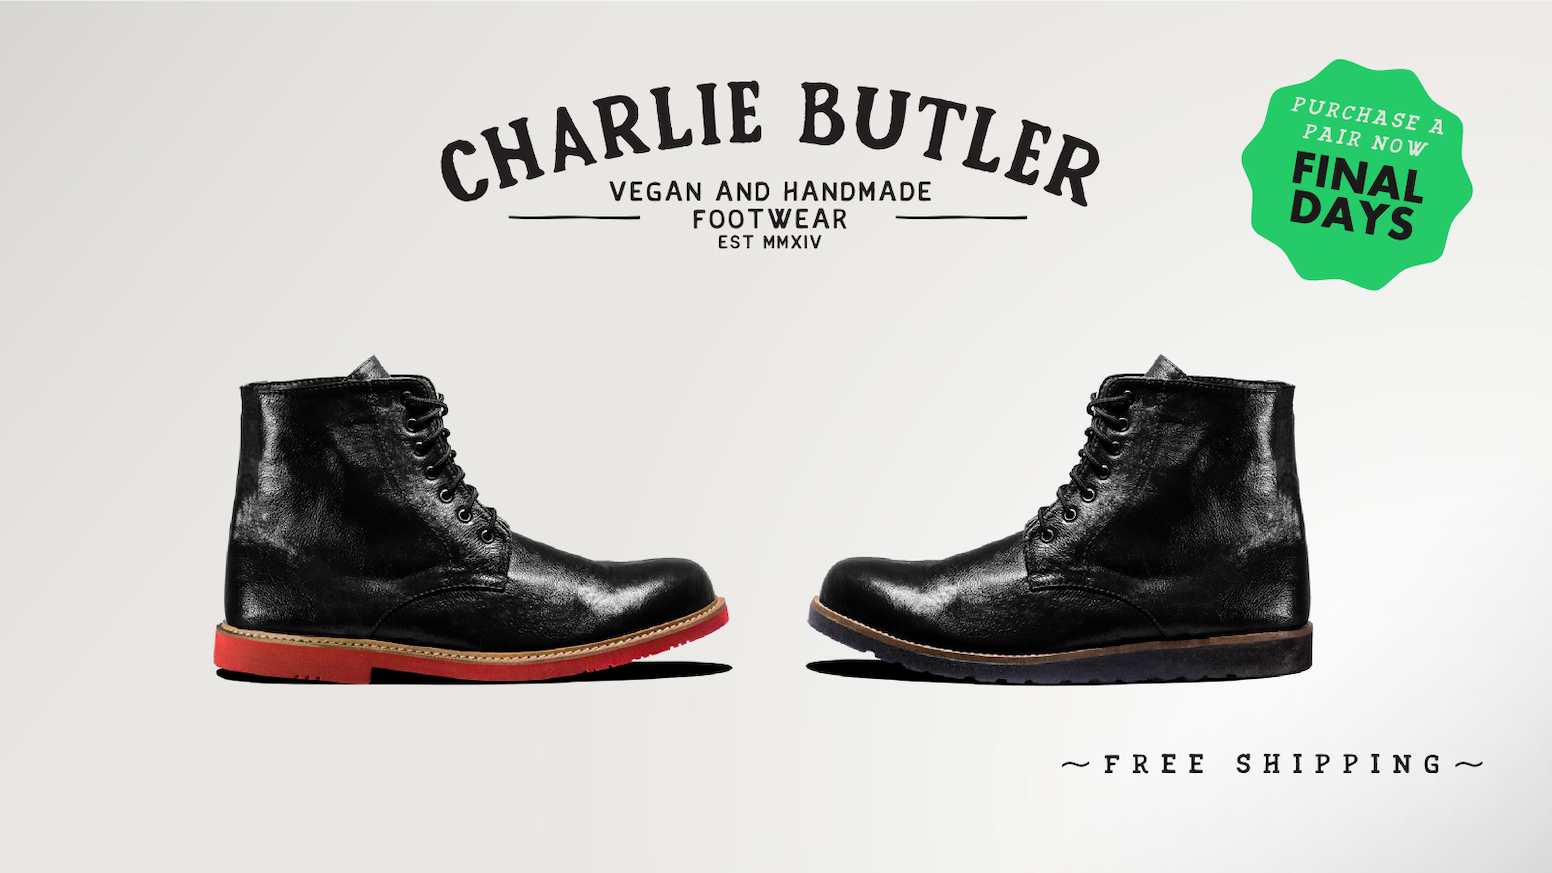 Charlie Butler shoes & boots are extremely comfortable, handmade and vegan. From $135 USD with free worldwide shipping. Our Kickstarter has ended. Click the blue link below to purchase a pair from our online store.